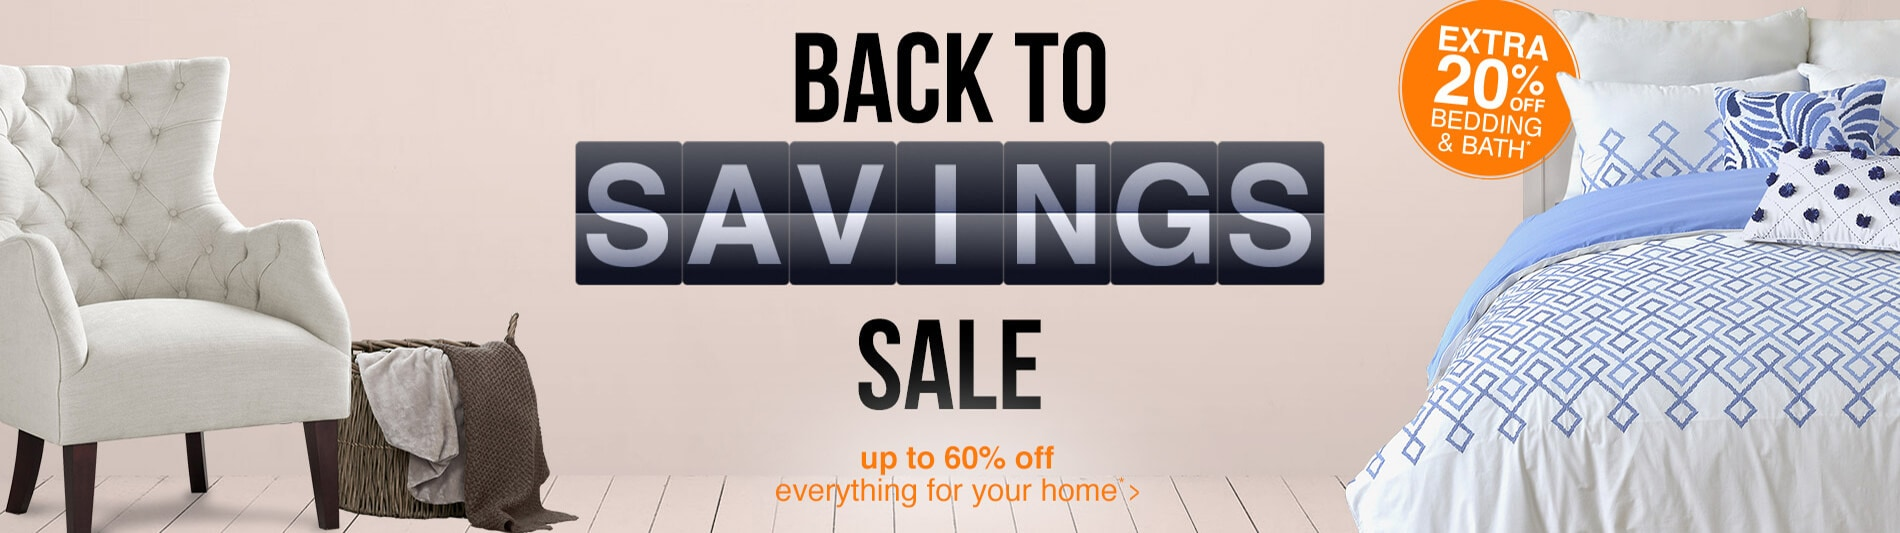 Back to Savings sale banner - Up to 60% off*